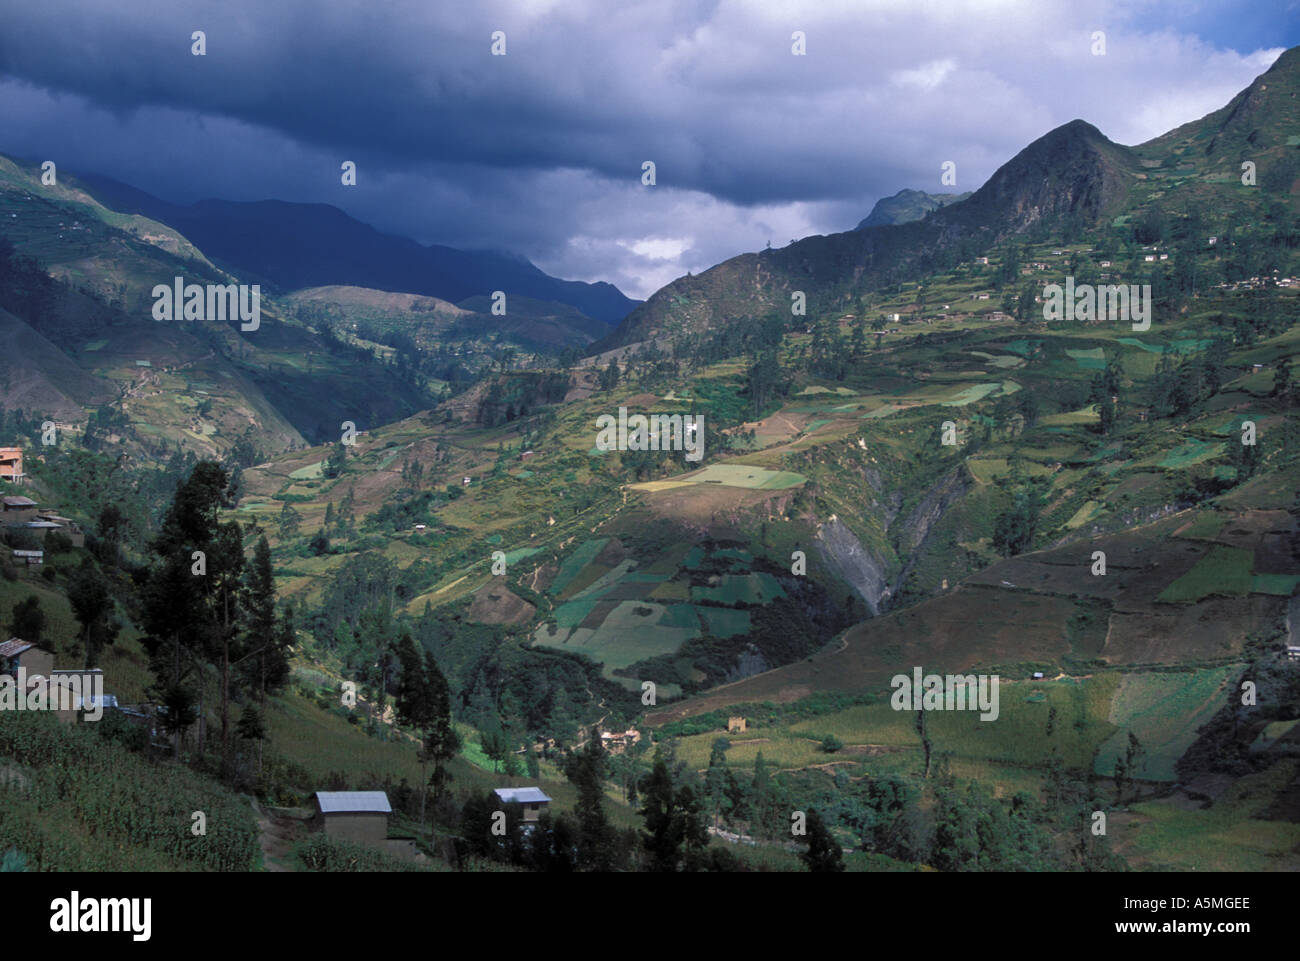 Agricultural land on mountain slopes above 2000 meters Cordillera real Andes mountains Sorata Yungas region Bolivia - Stock Image